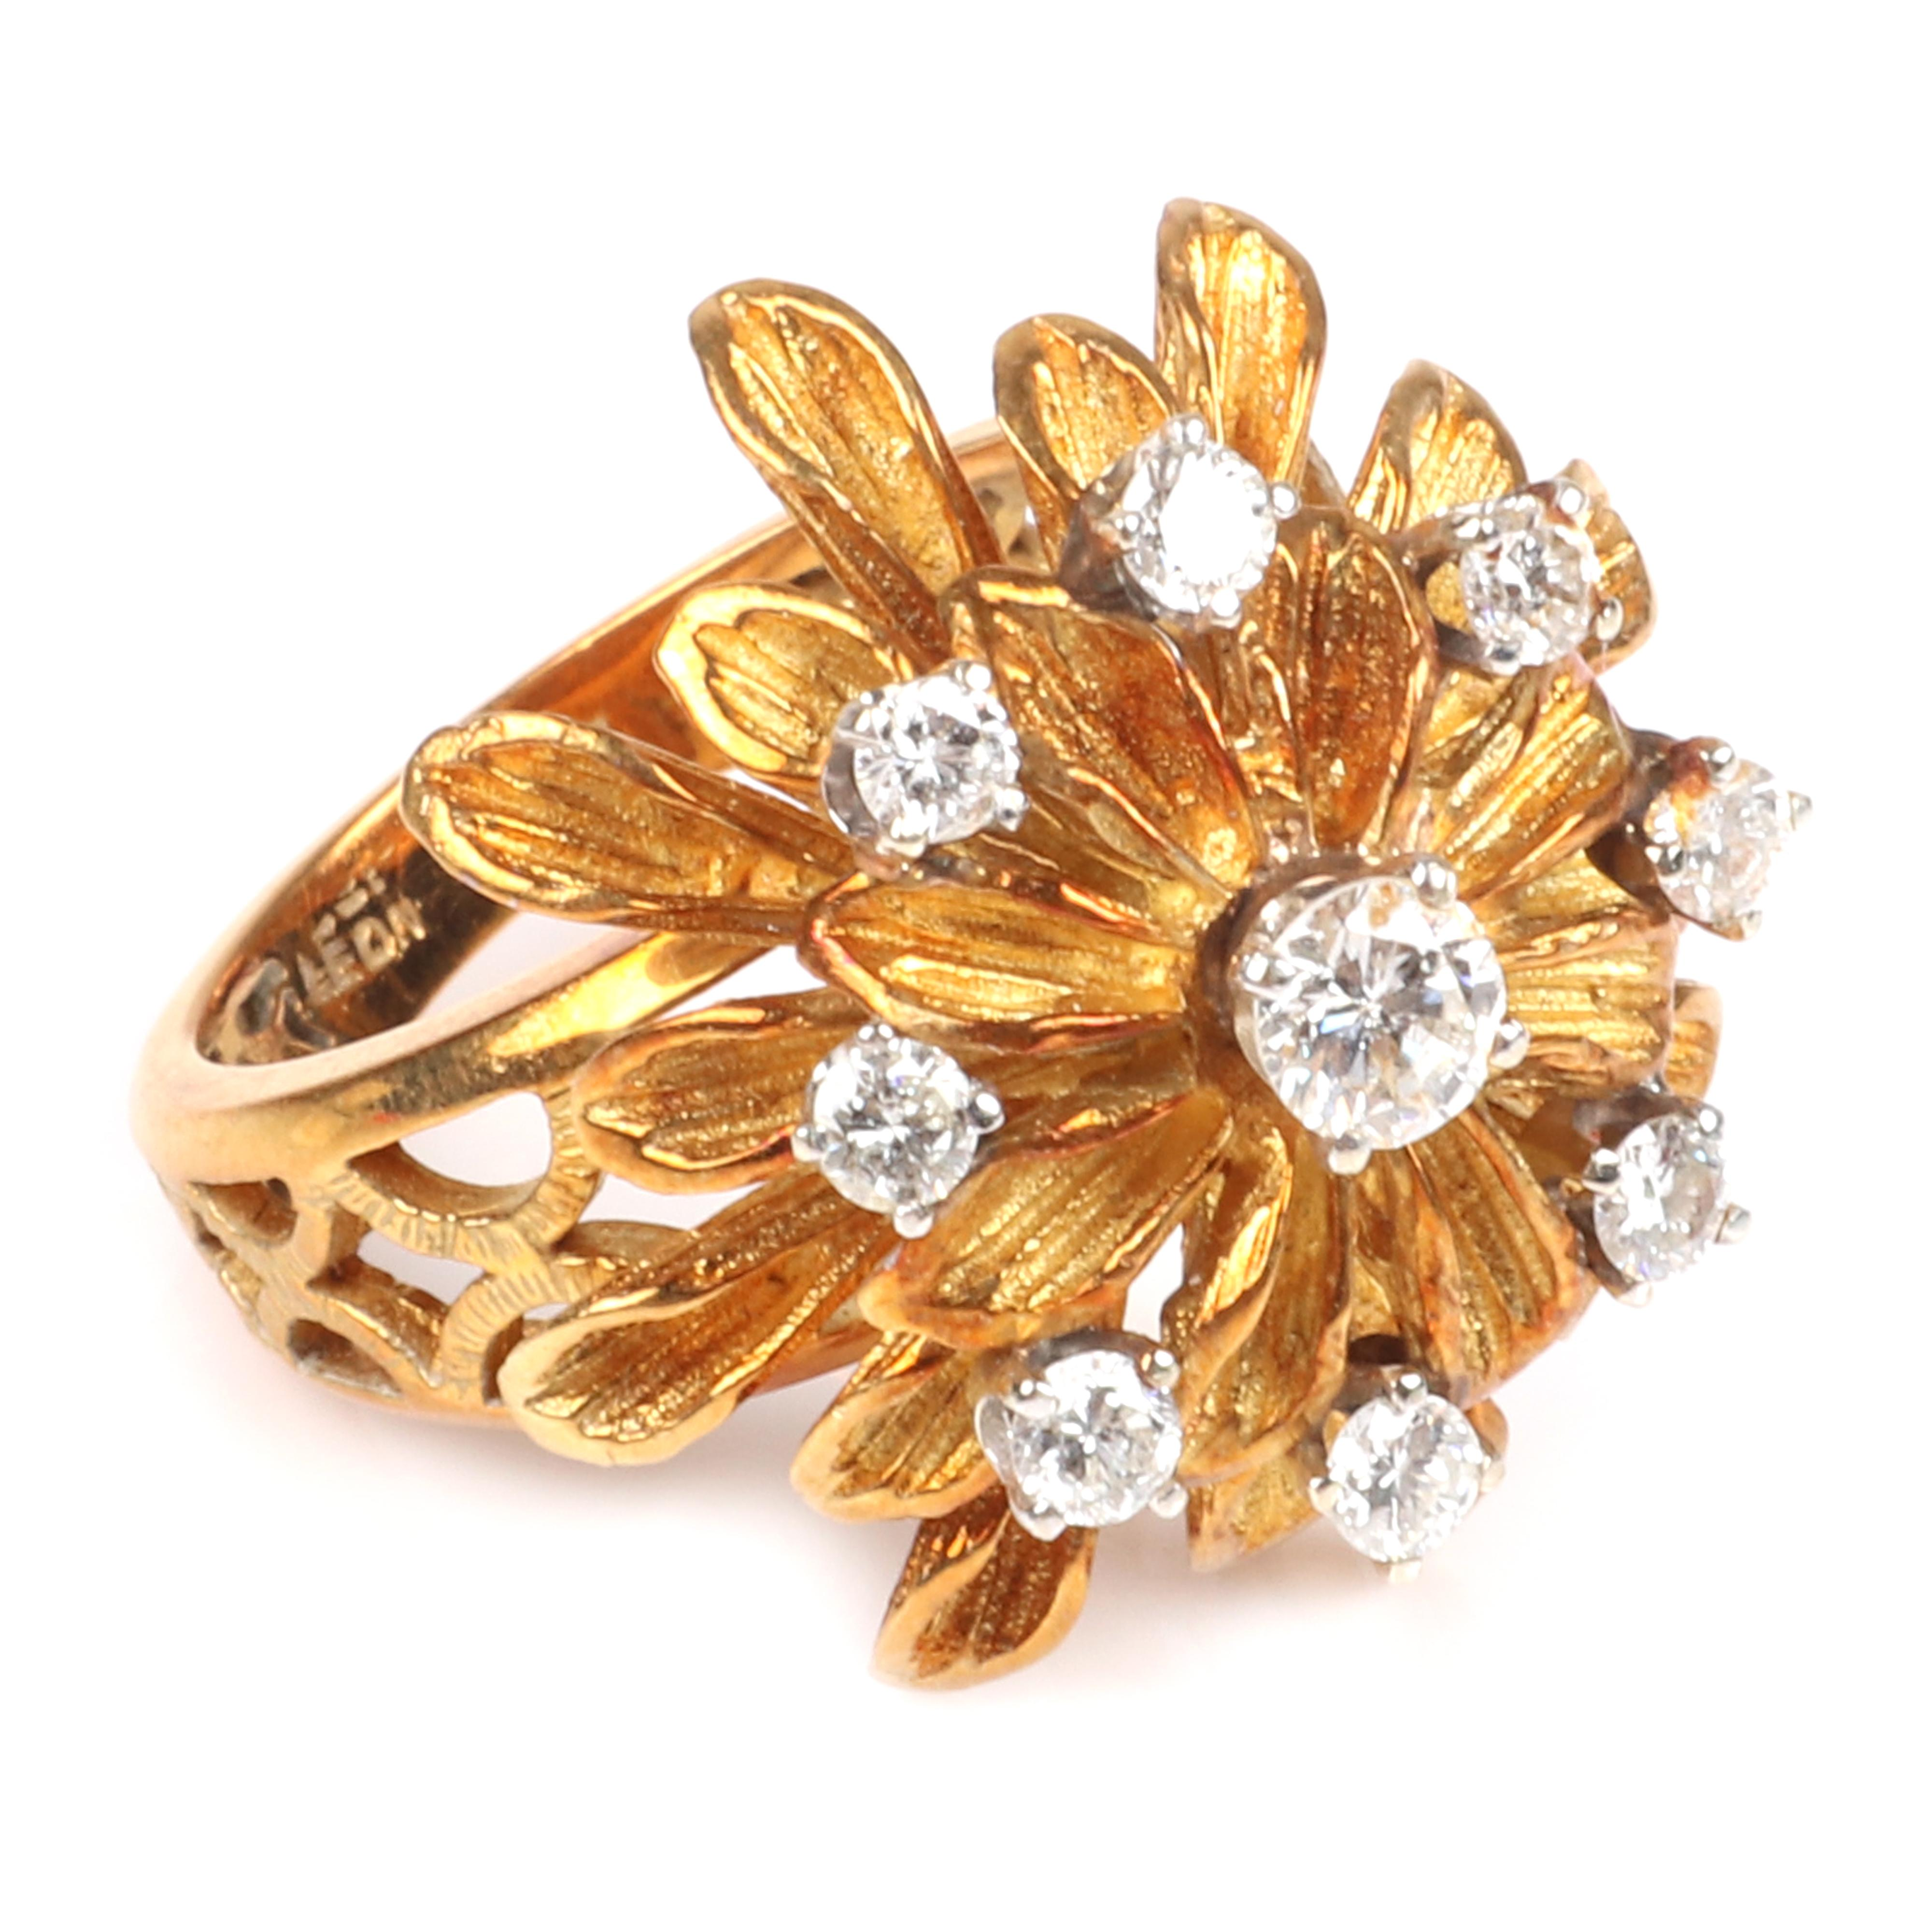 Leon Jewelry 18K rose gold diamond vintage flower starburst ring with layered petal design and lattice openwork band. RIng size 7, 7.15 dwt